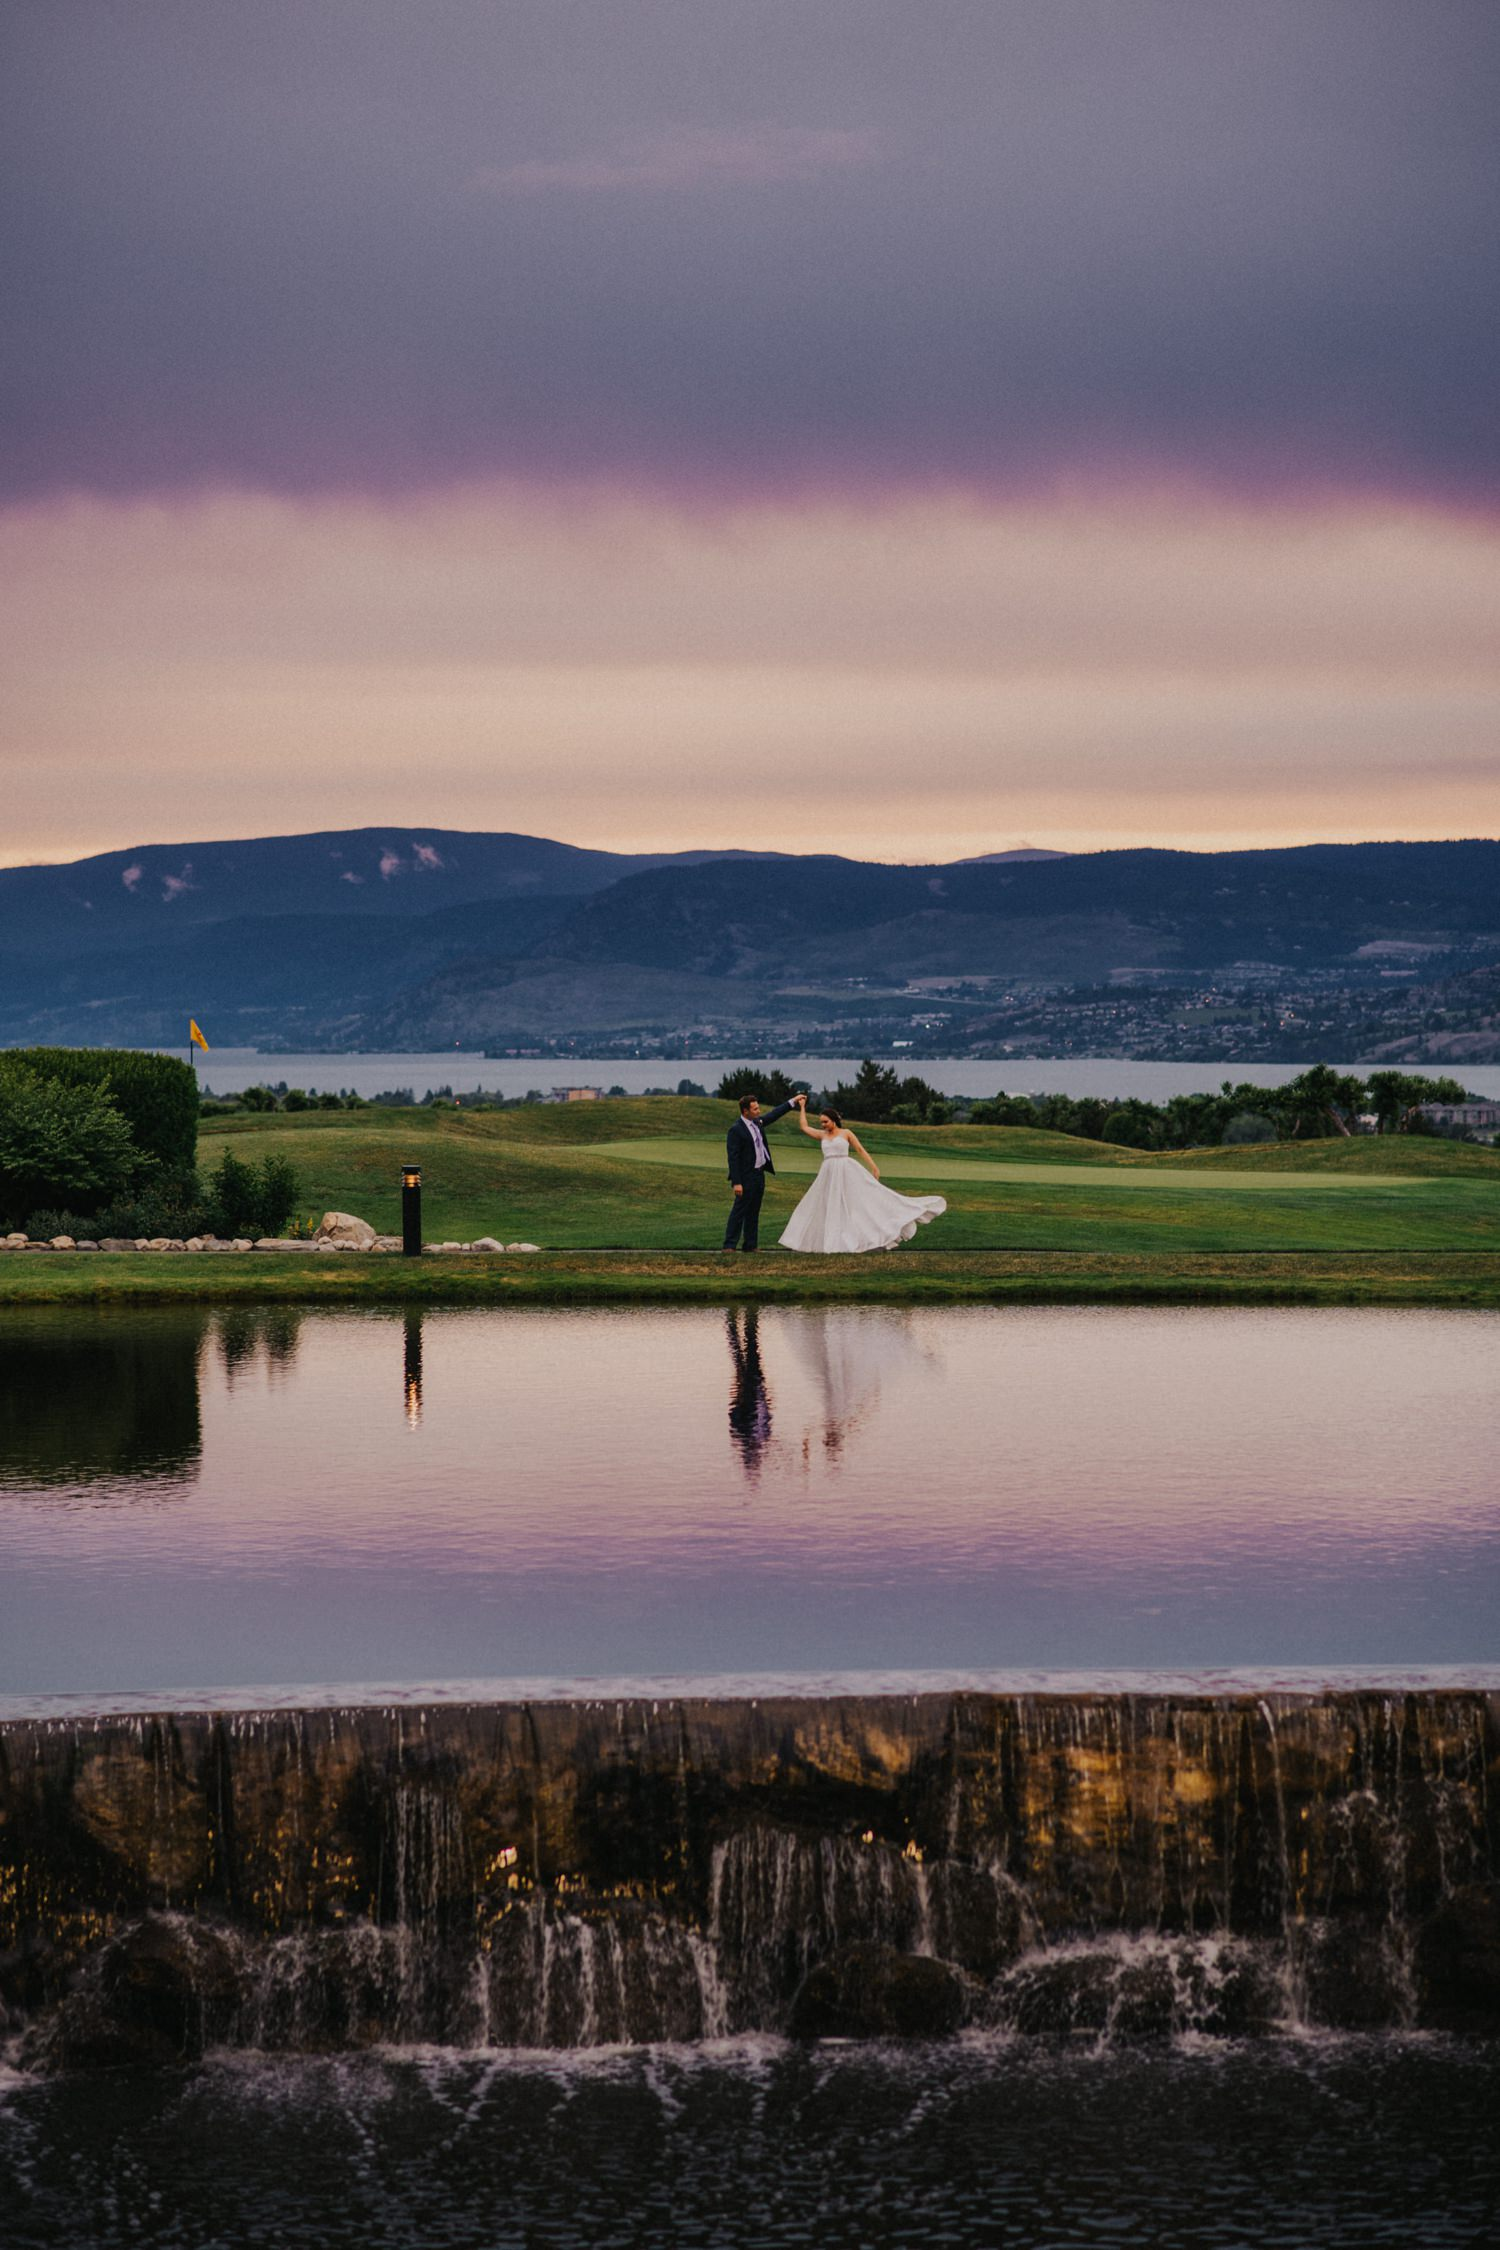 Sunset Wedding photo at the Harvest Golf Course